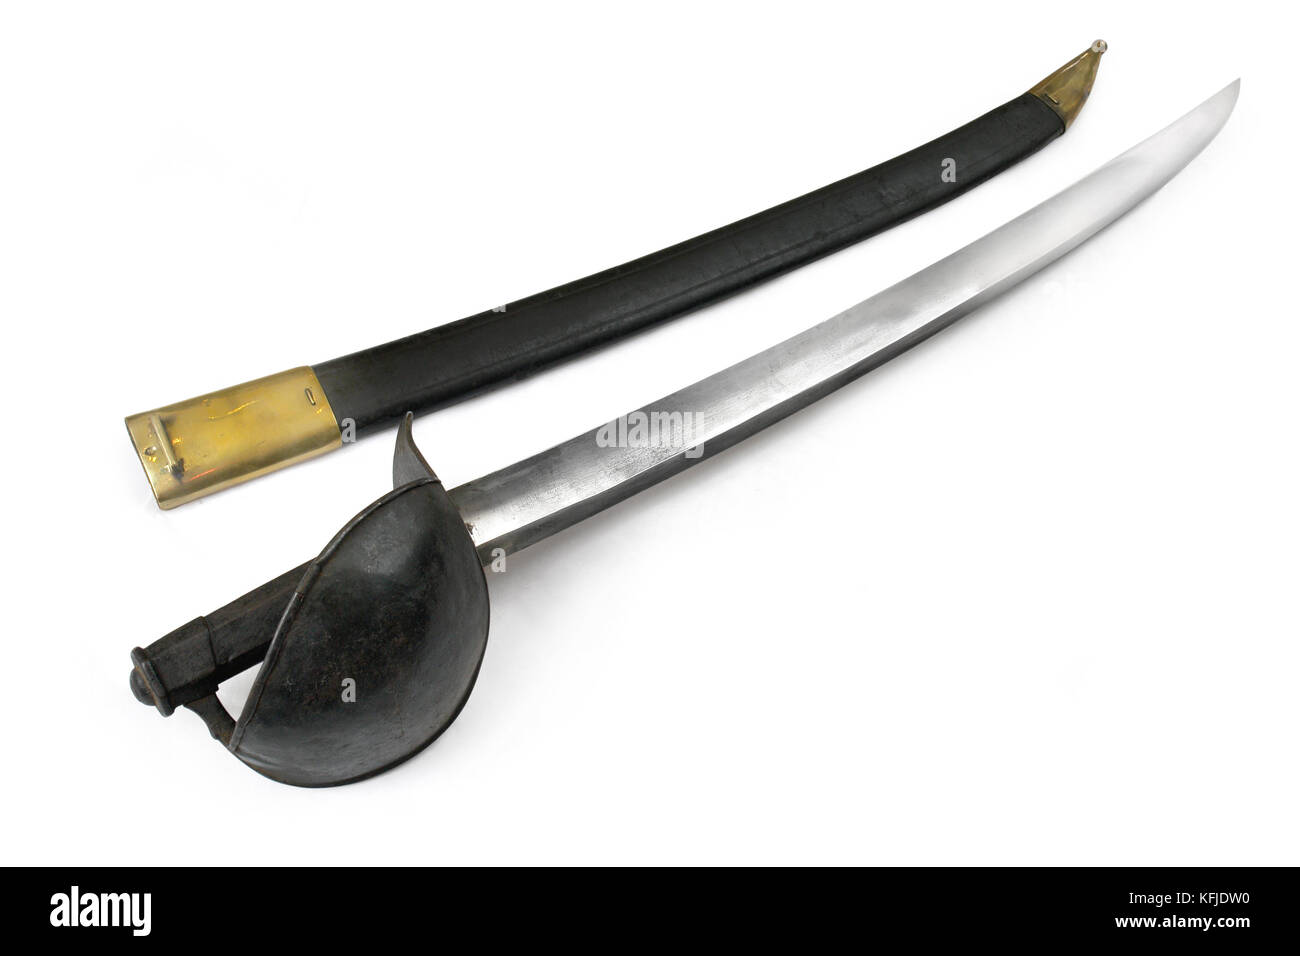 French navy grapnel saber (sabre). The 19th century. France - Stock Image